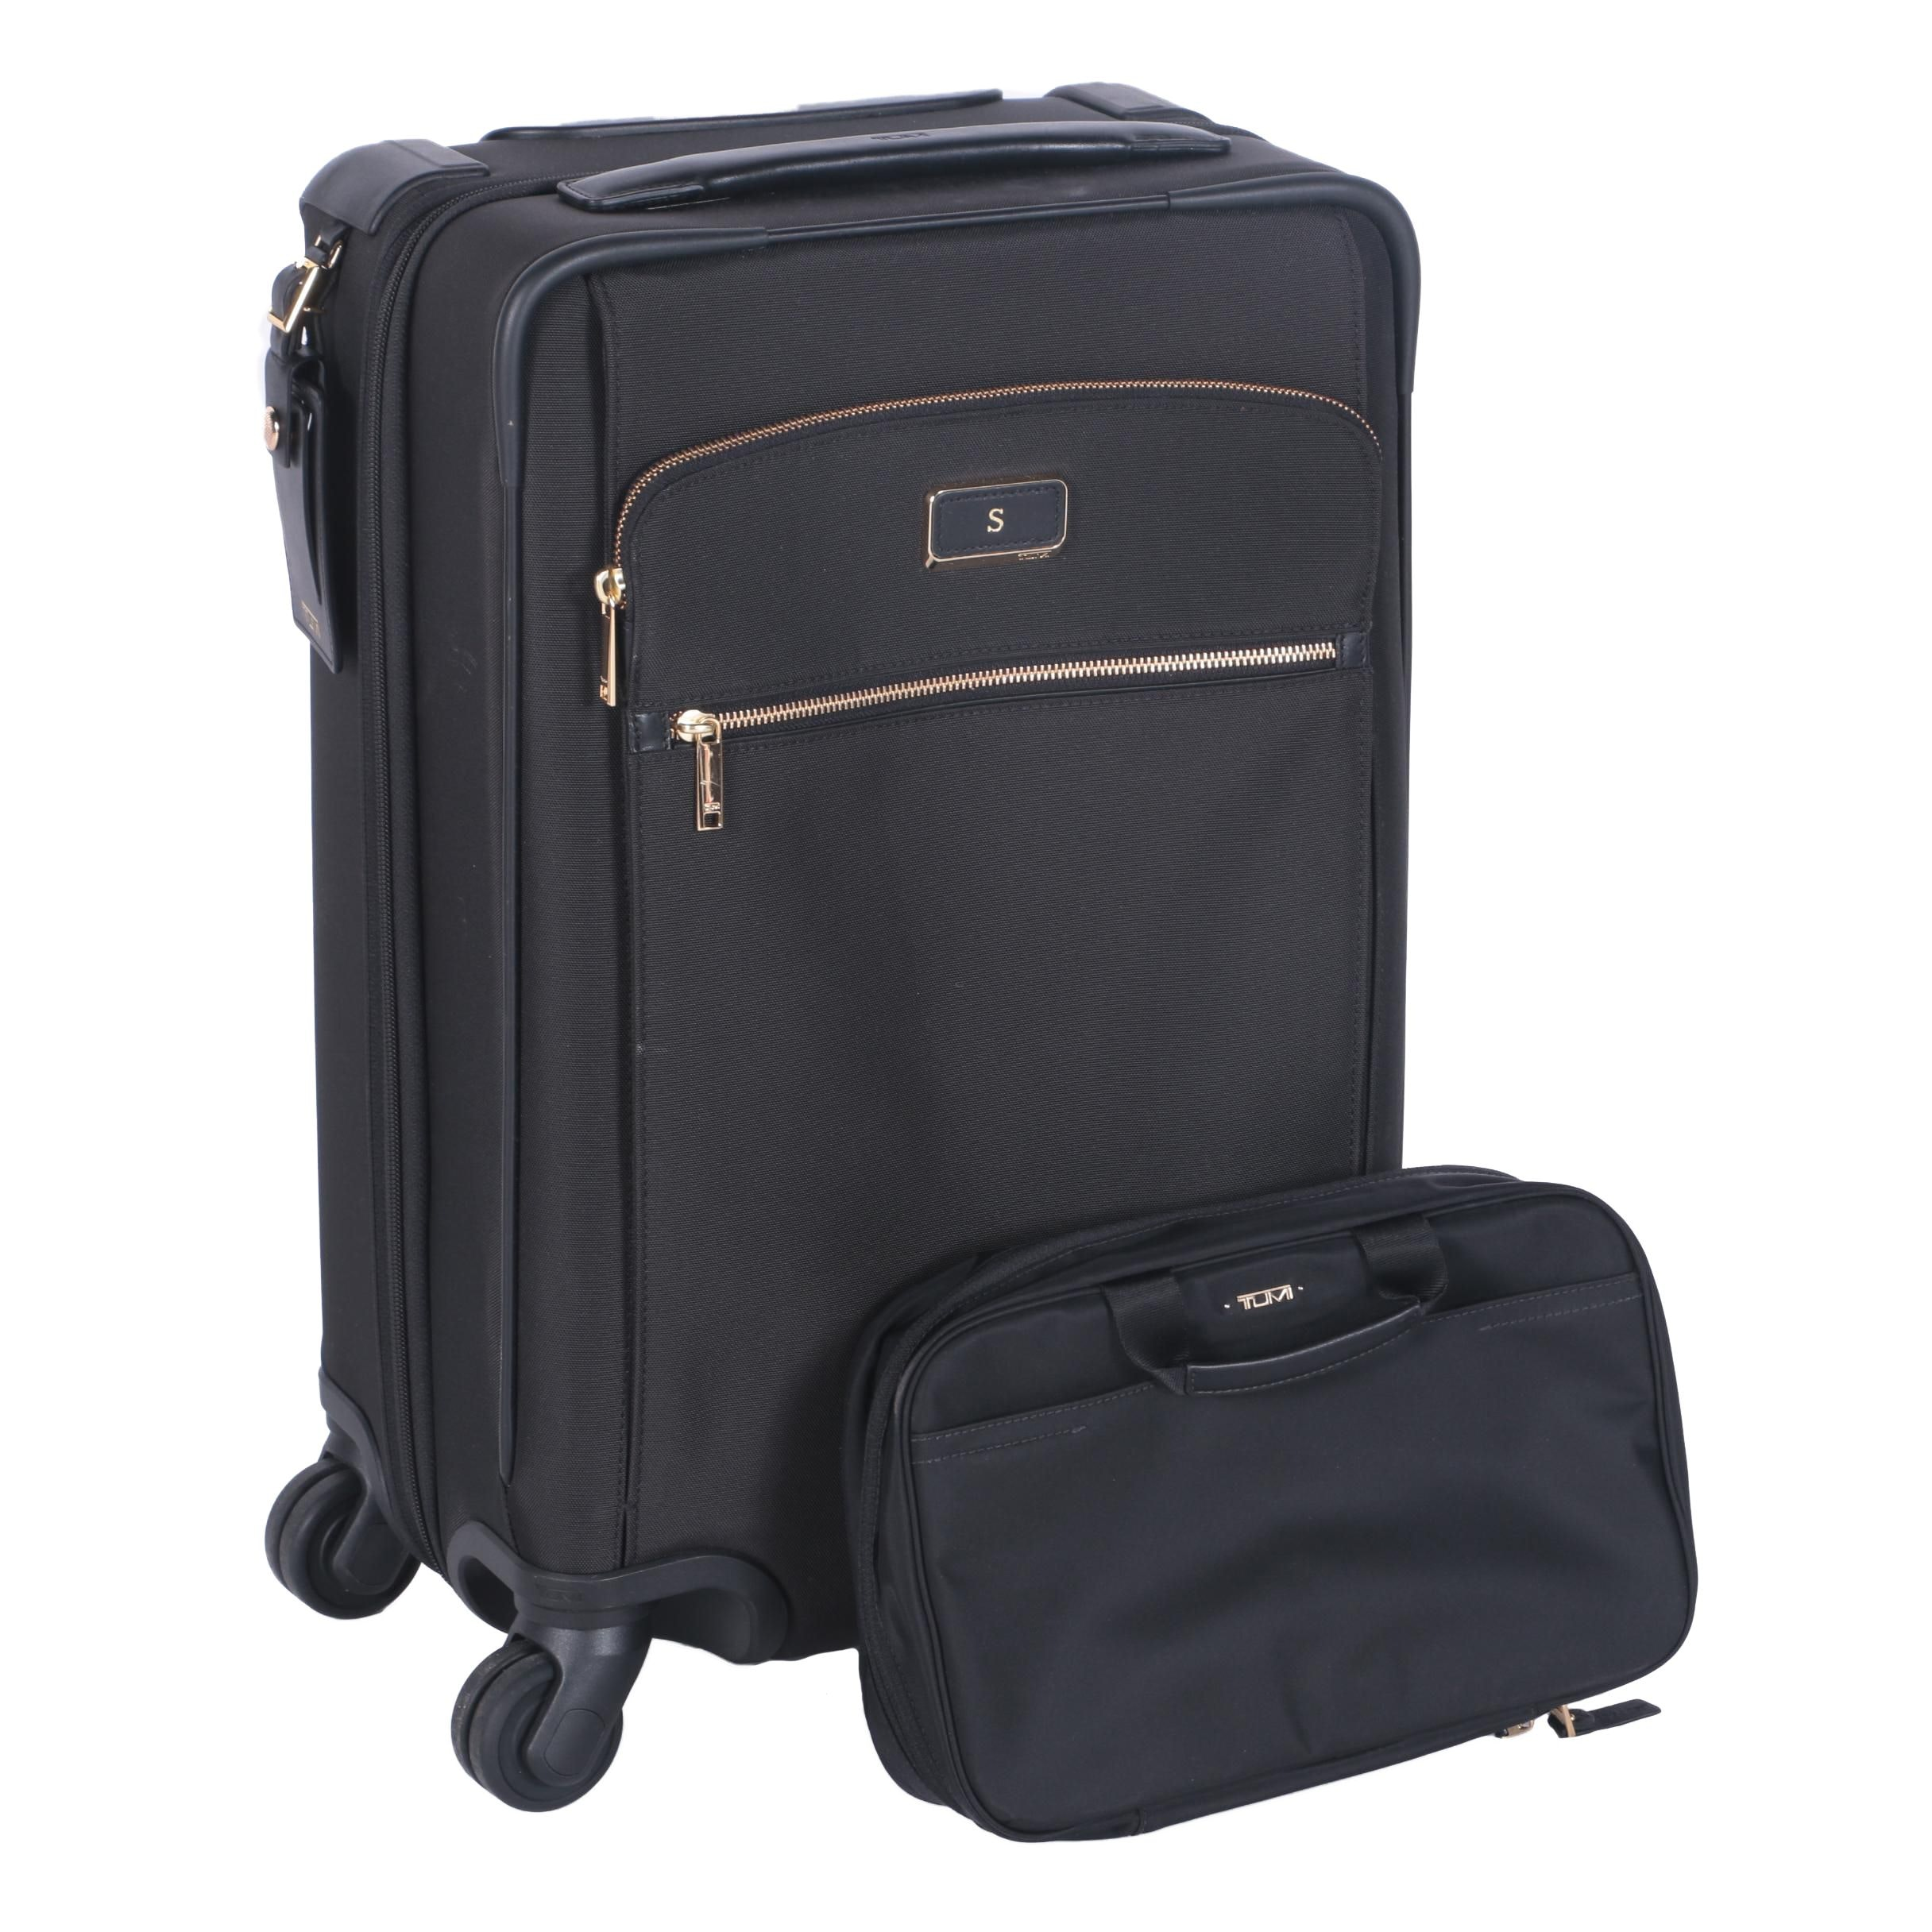 Tumi Rolling Luggage and Cosmetic Case